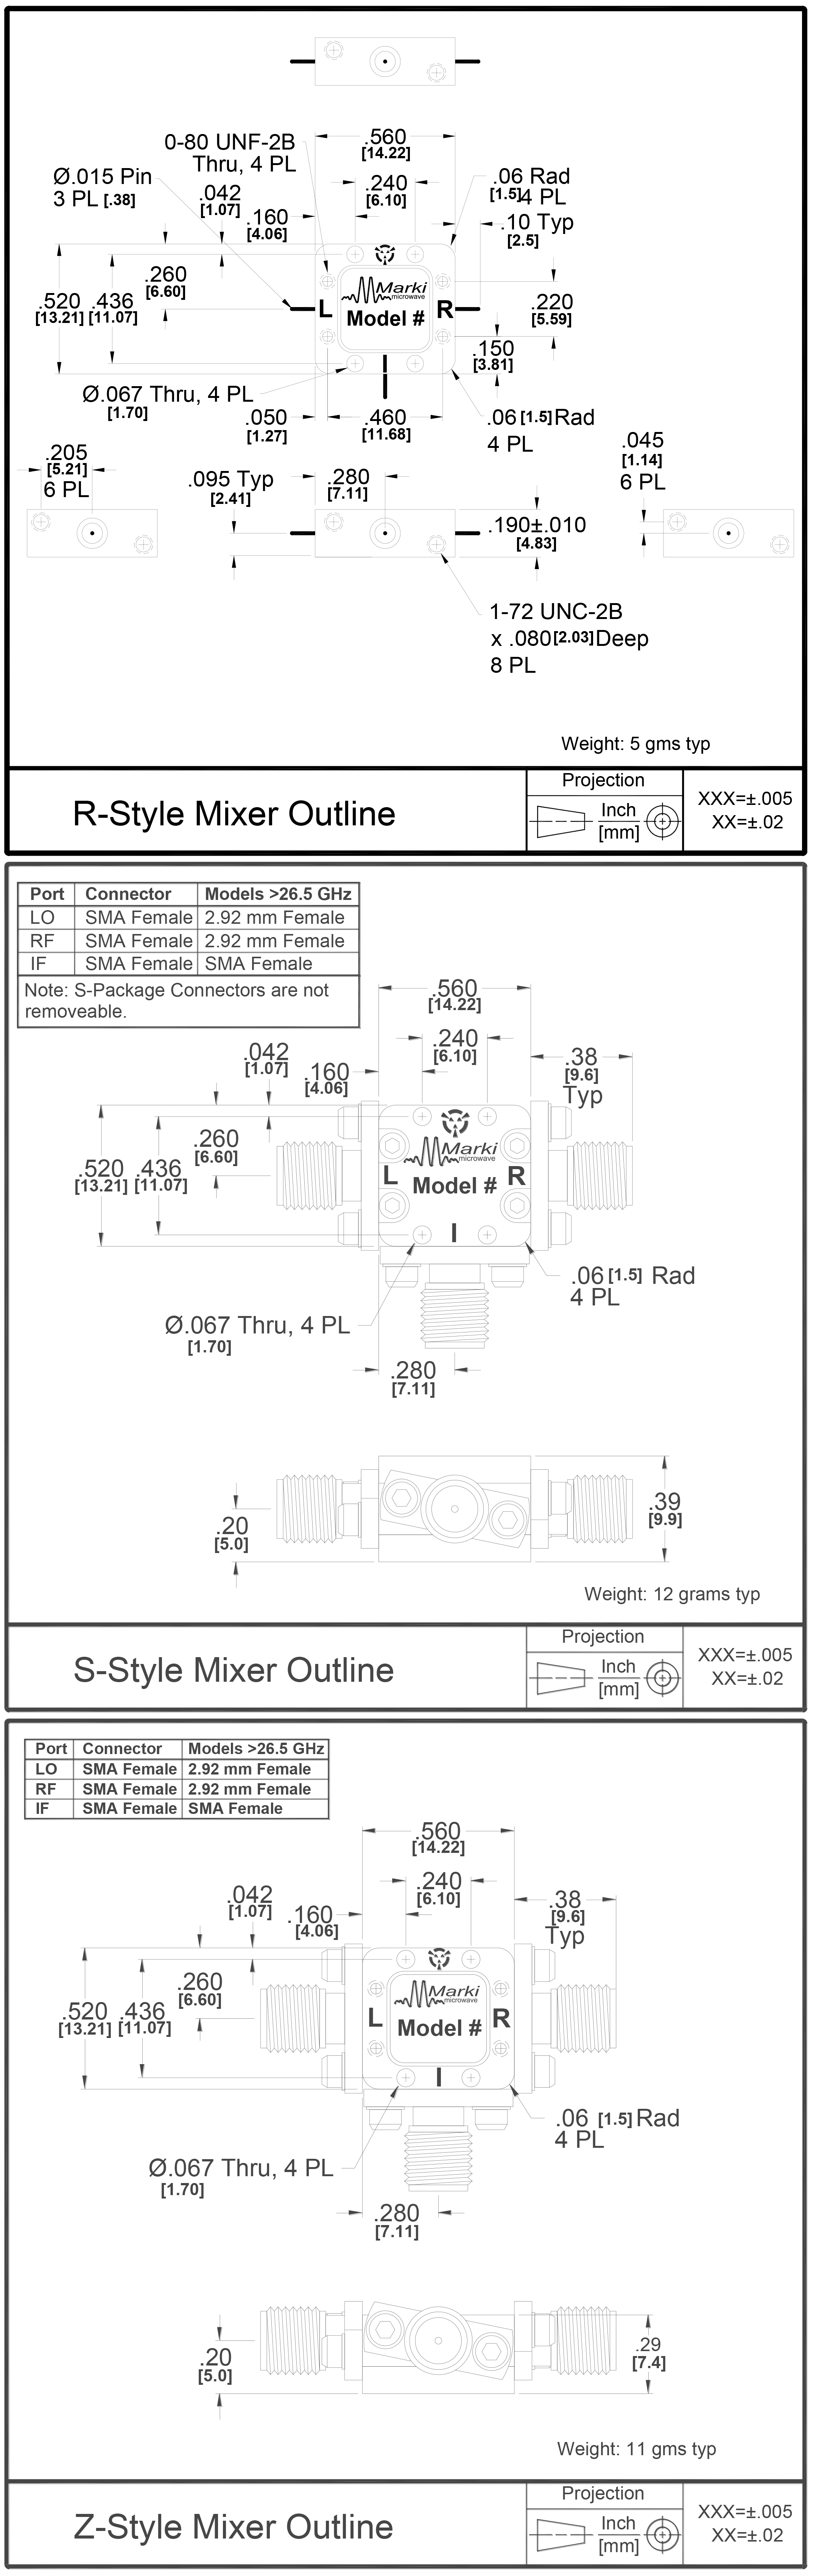 M1R-0726 Mixer Package Diagram